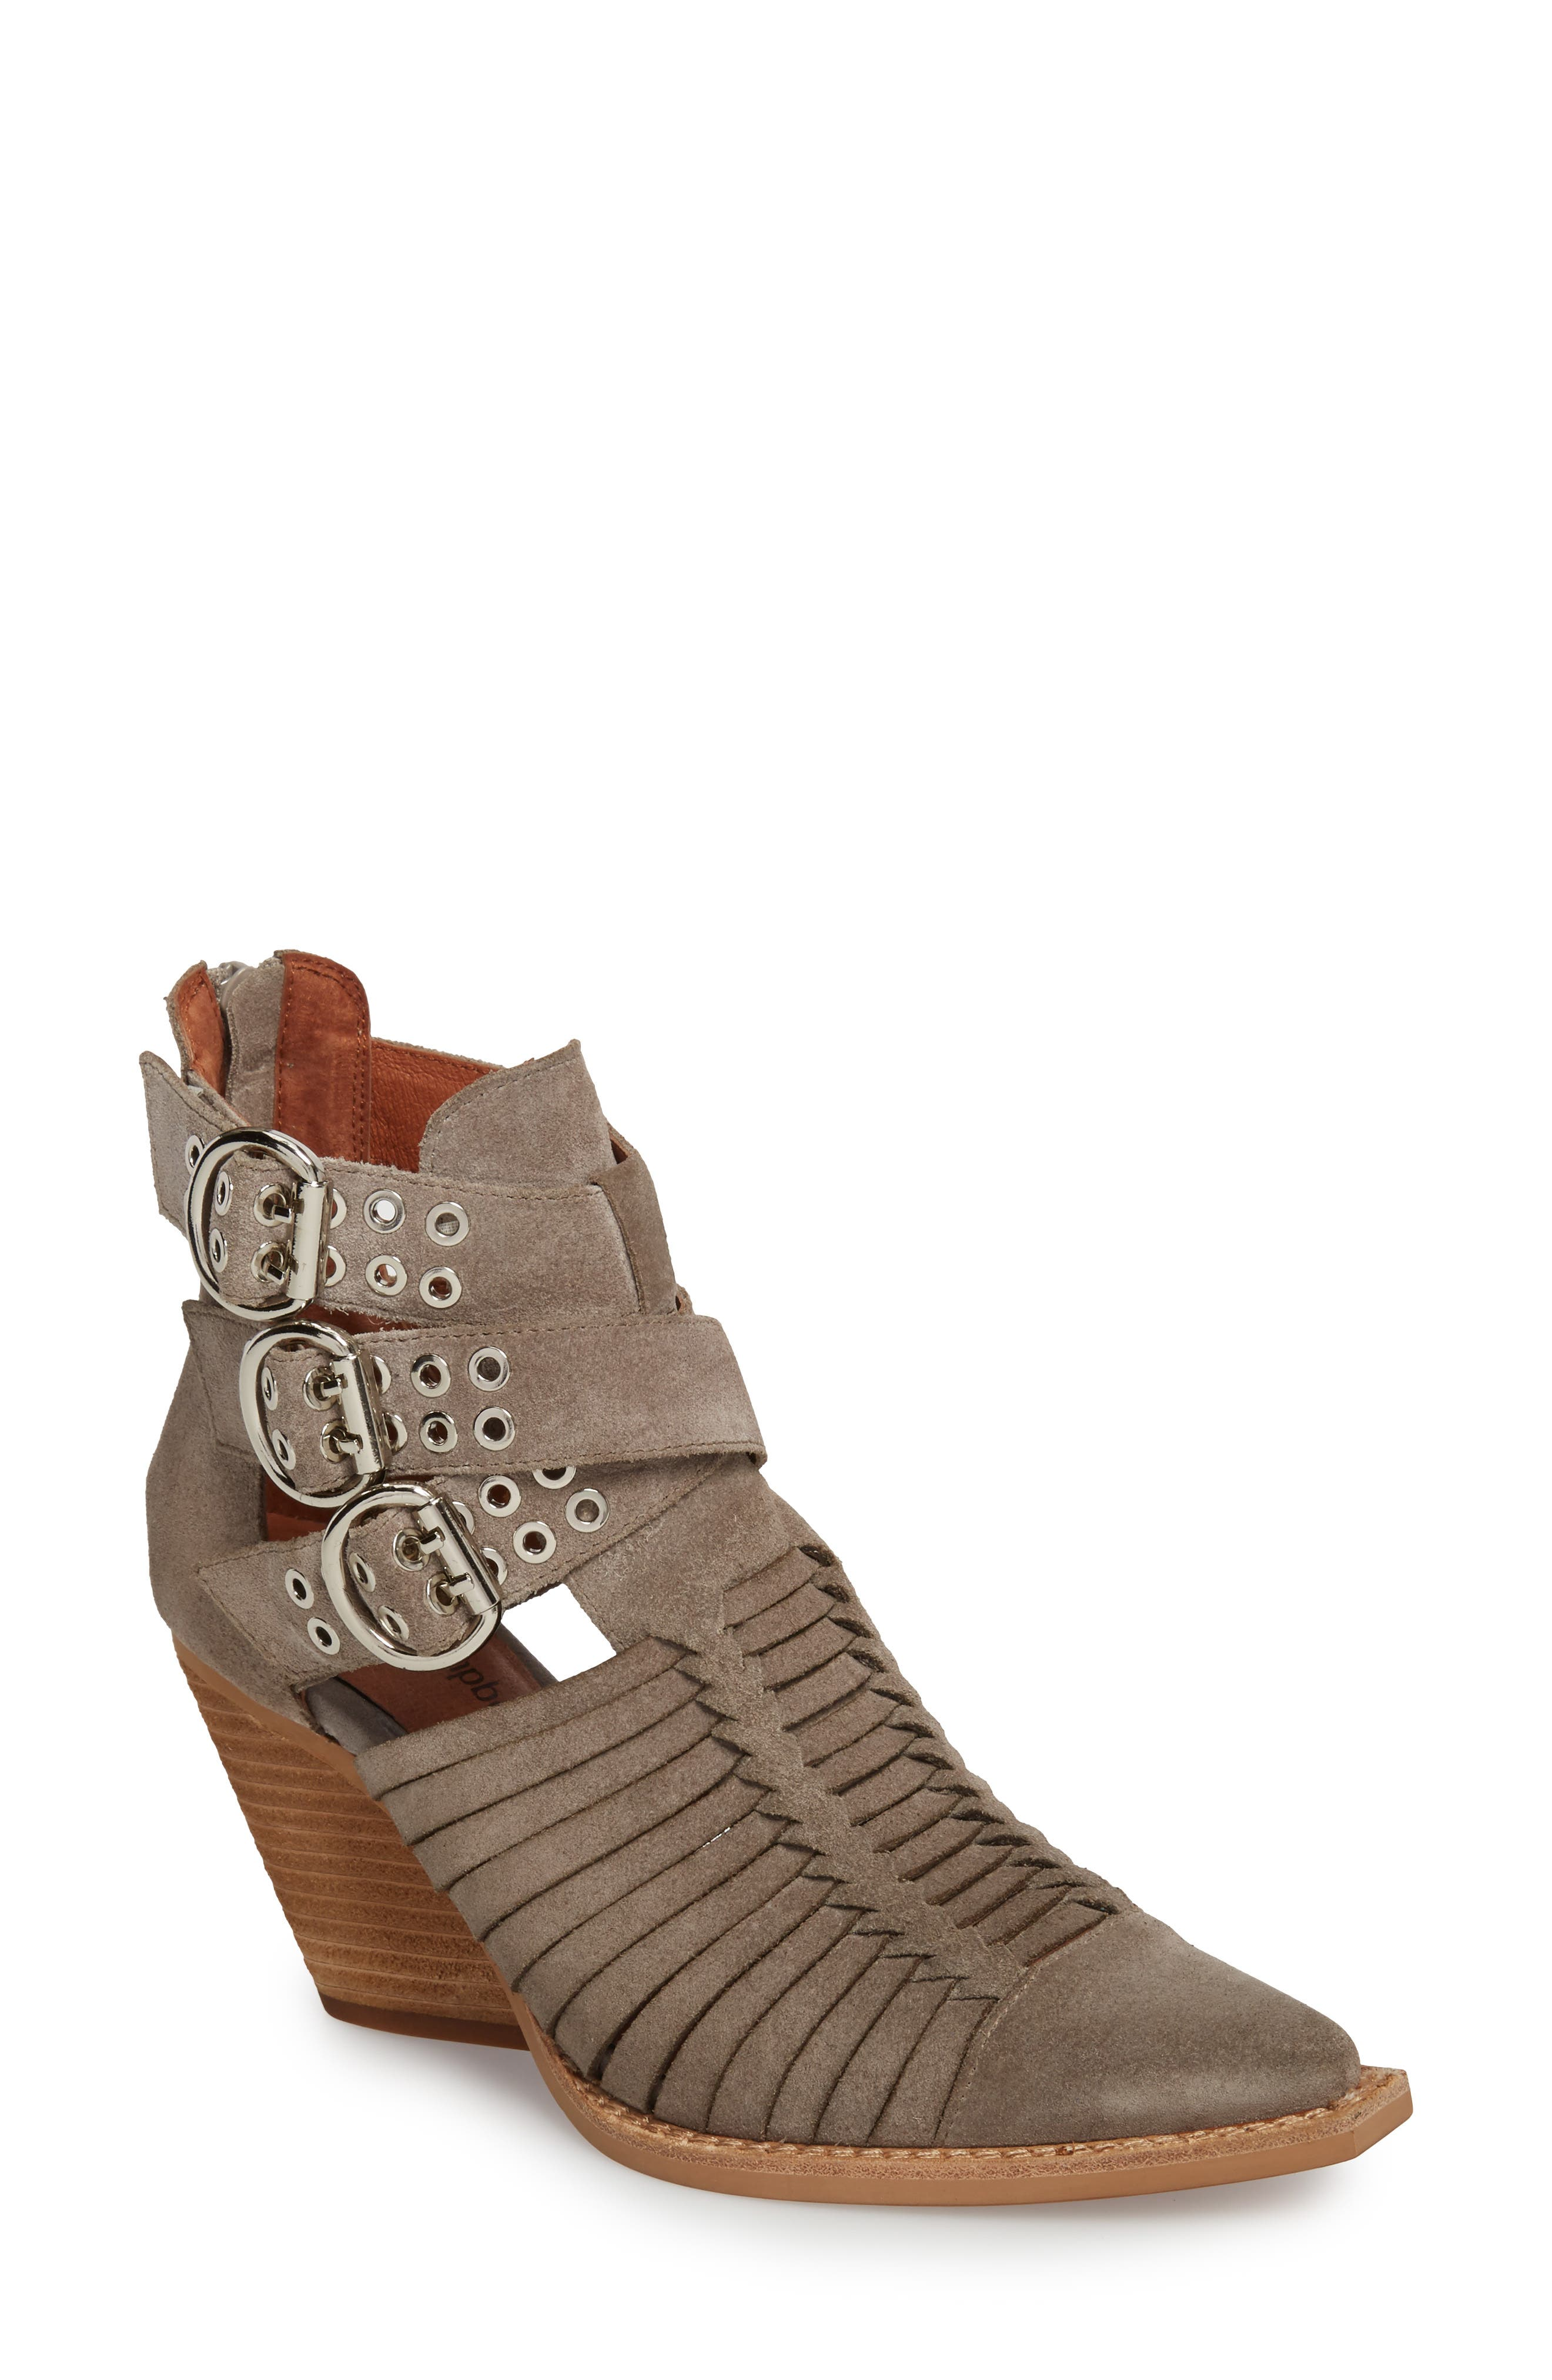 Jamison Bootie,                             Main thumbnail 1, color,                             Taupe Oiled Suede